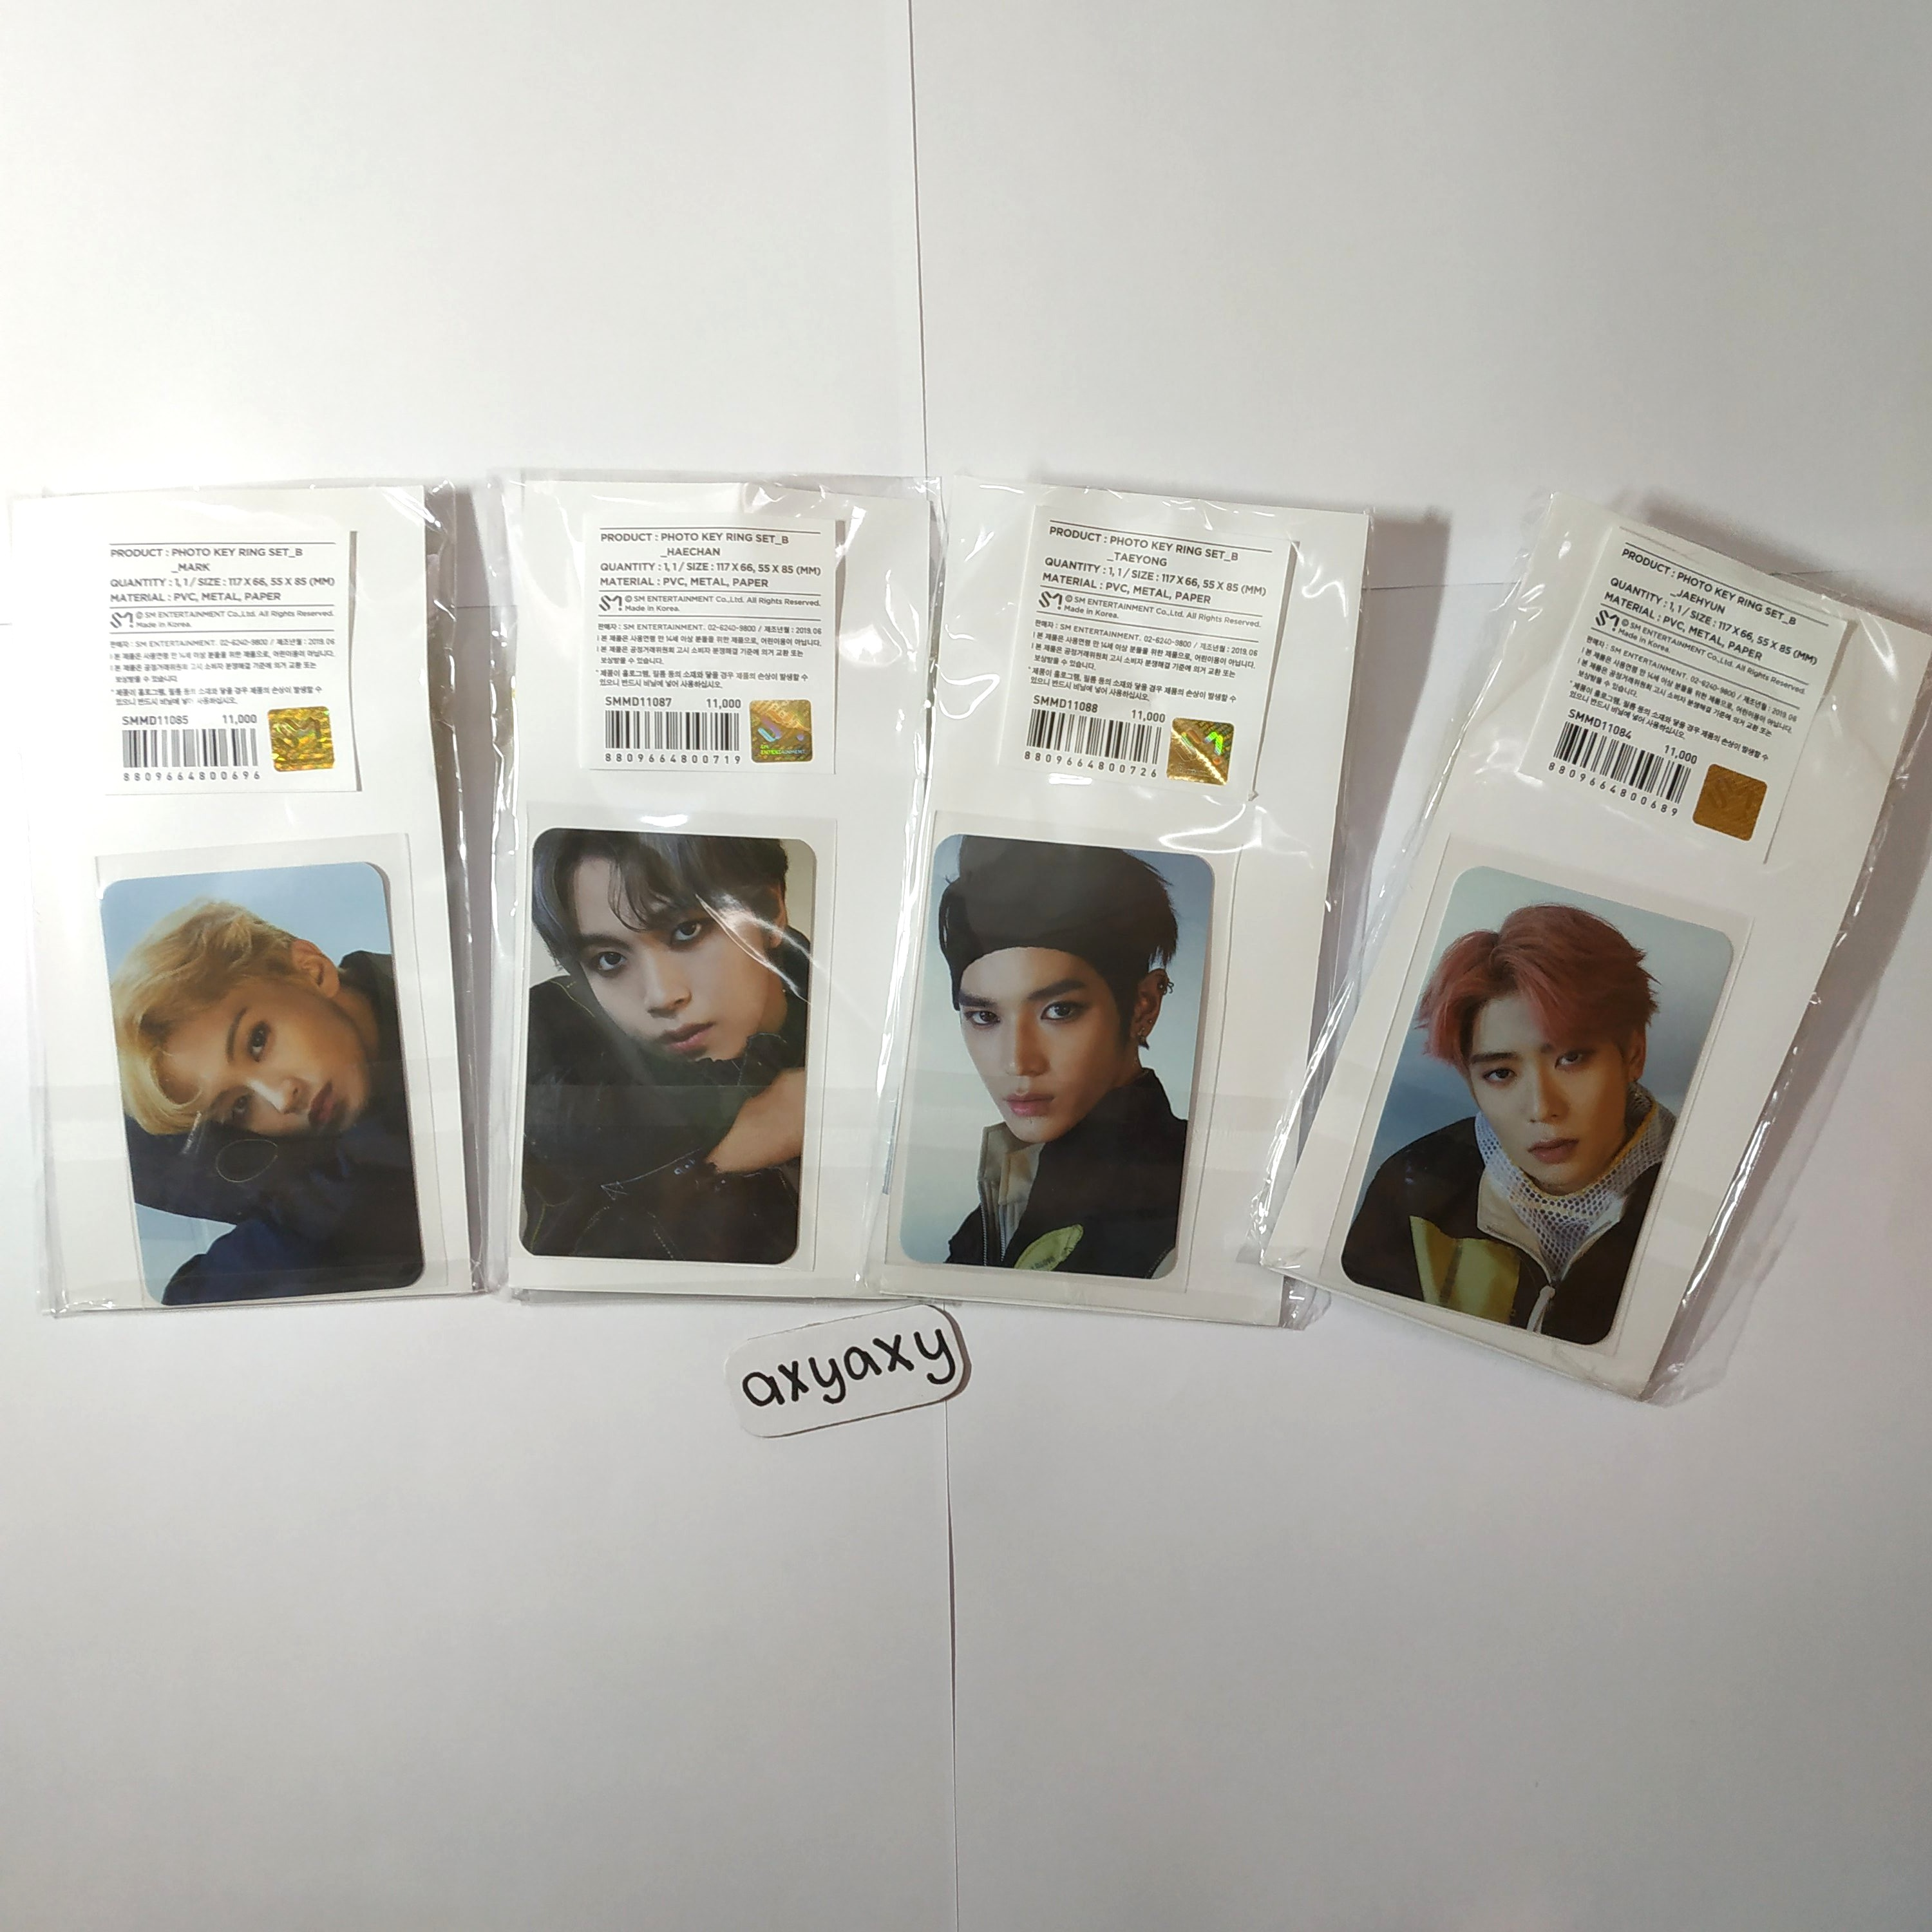 [WTS] NCT 127 We Are Superhuman Official Goods: Keyring + Photocard (DDP)